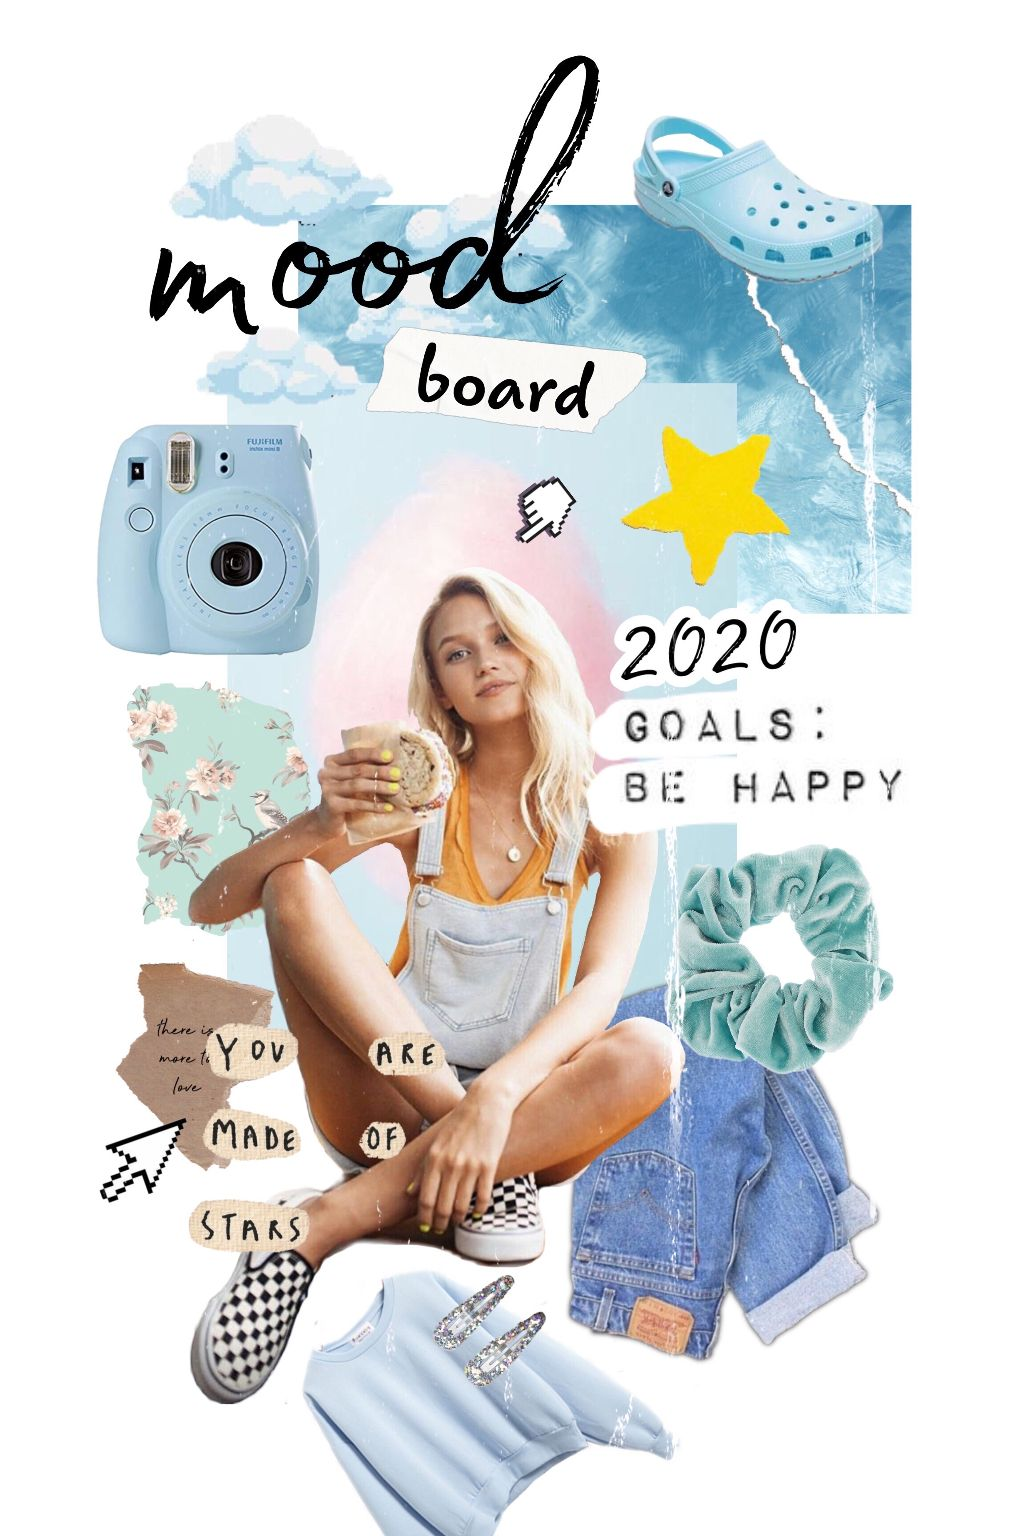 Here's to new beginings ✨ Set up new goals and resolutions by creating a 2020 mood board bit.ly/MoodBoard2020 #moodboard #2020 #vision #goals #freetoedit